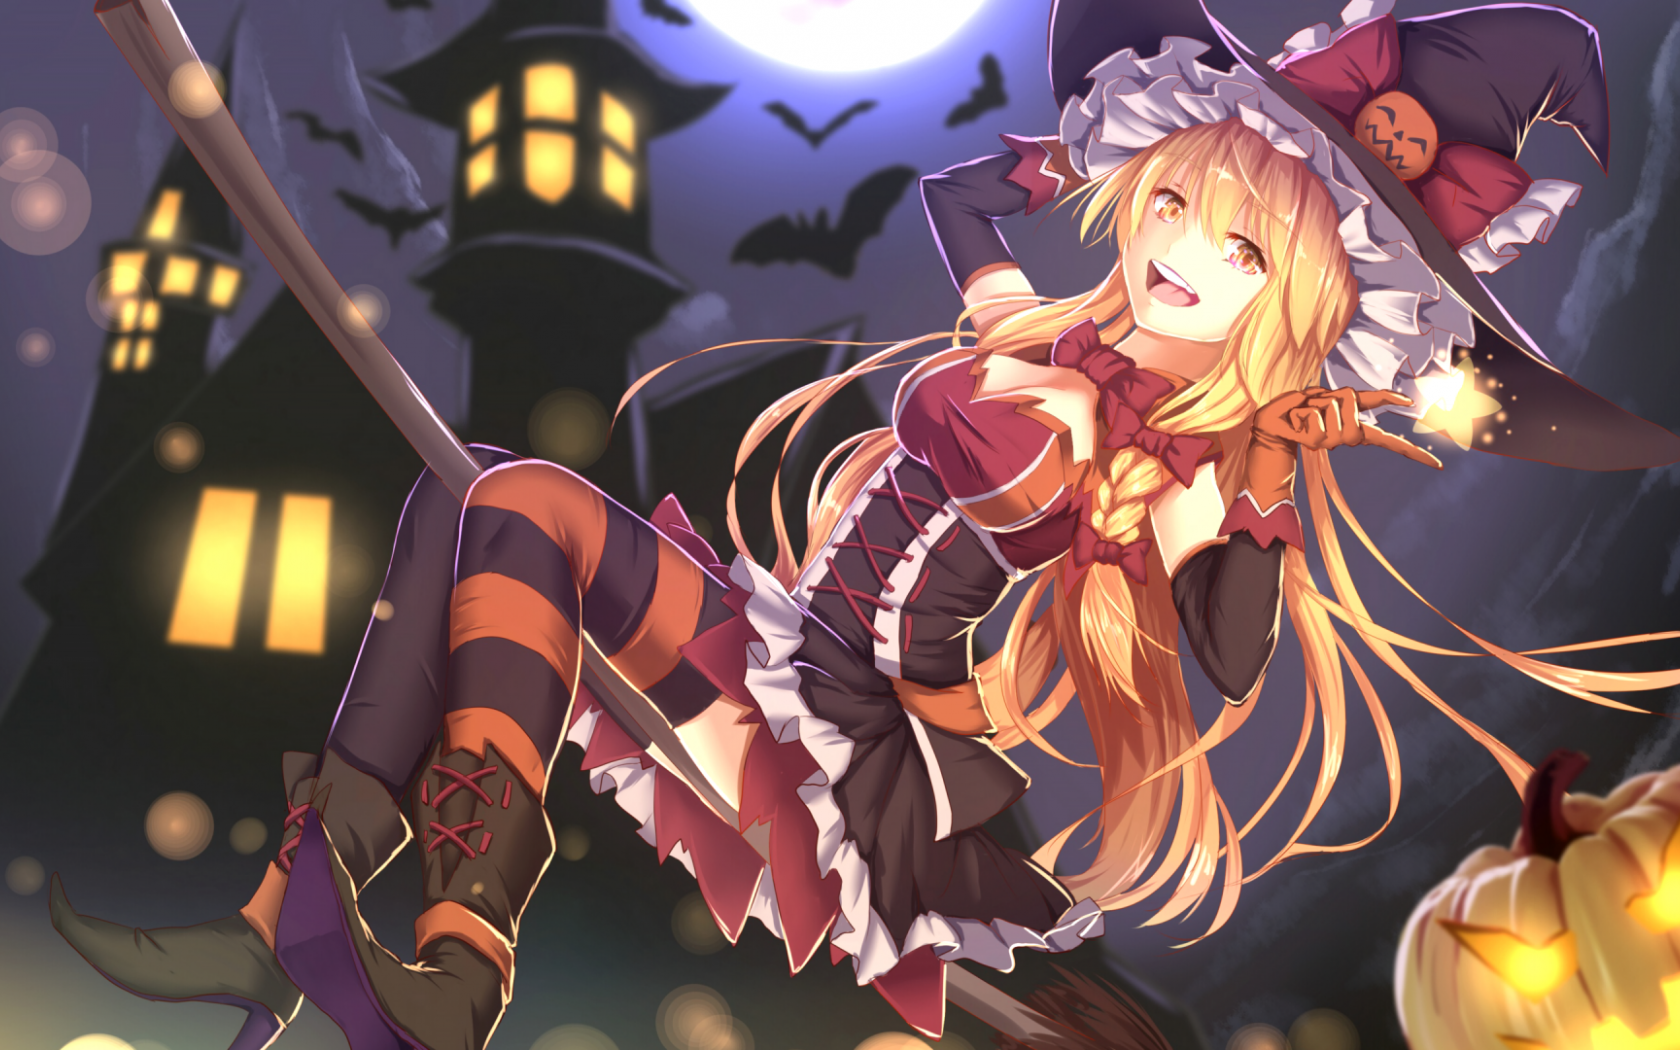 Free download Download 1920x1080 Anime Girl Halloween Costume Witch Broom  [1920x1080] for your Desktop, Mobile & Tablet | Explore 38+ Halloween Anime  Girls Wallpapers | Halloween Anime Girls Wallpapers, Anime Wallpapers Girls,